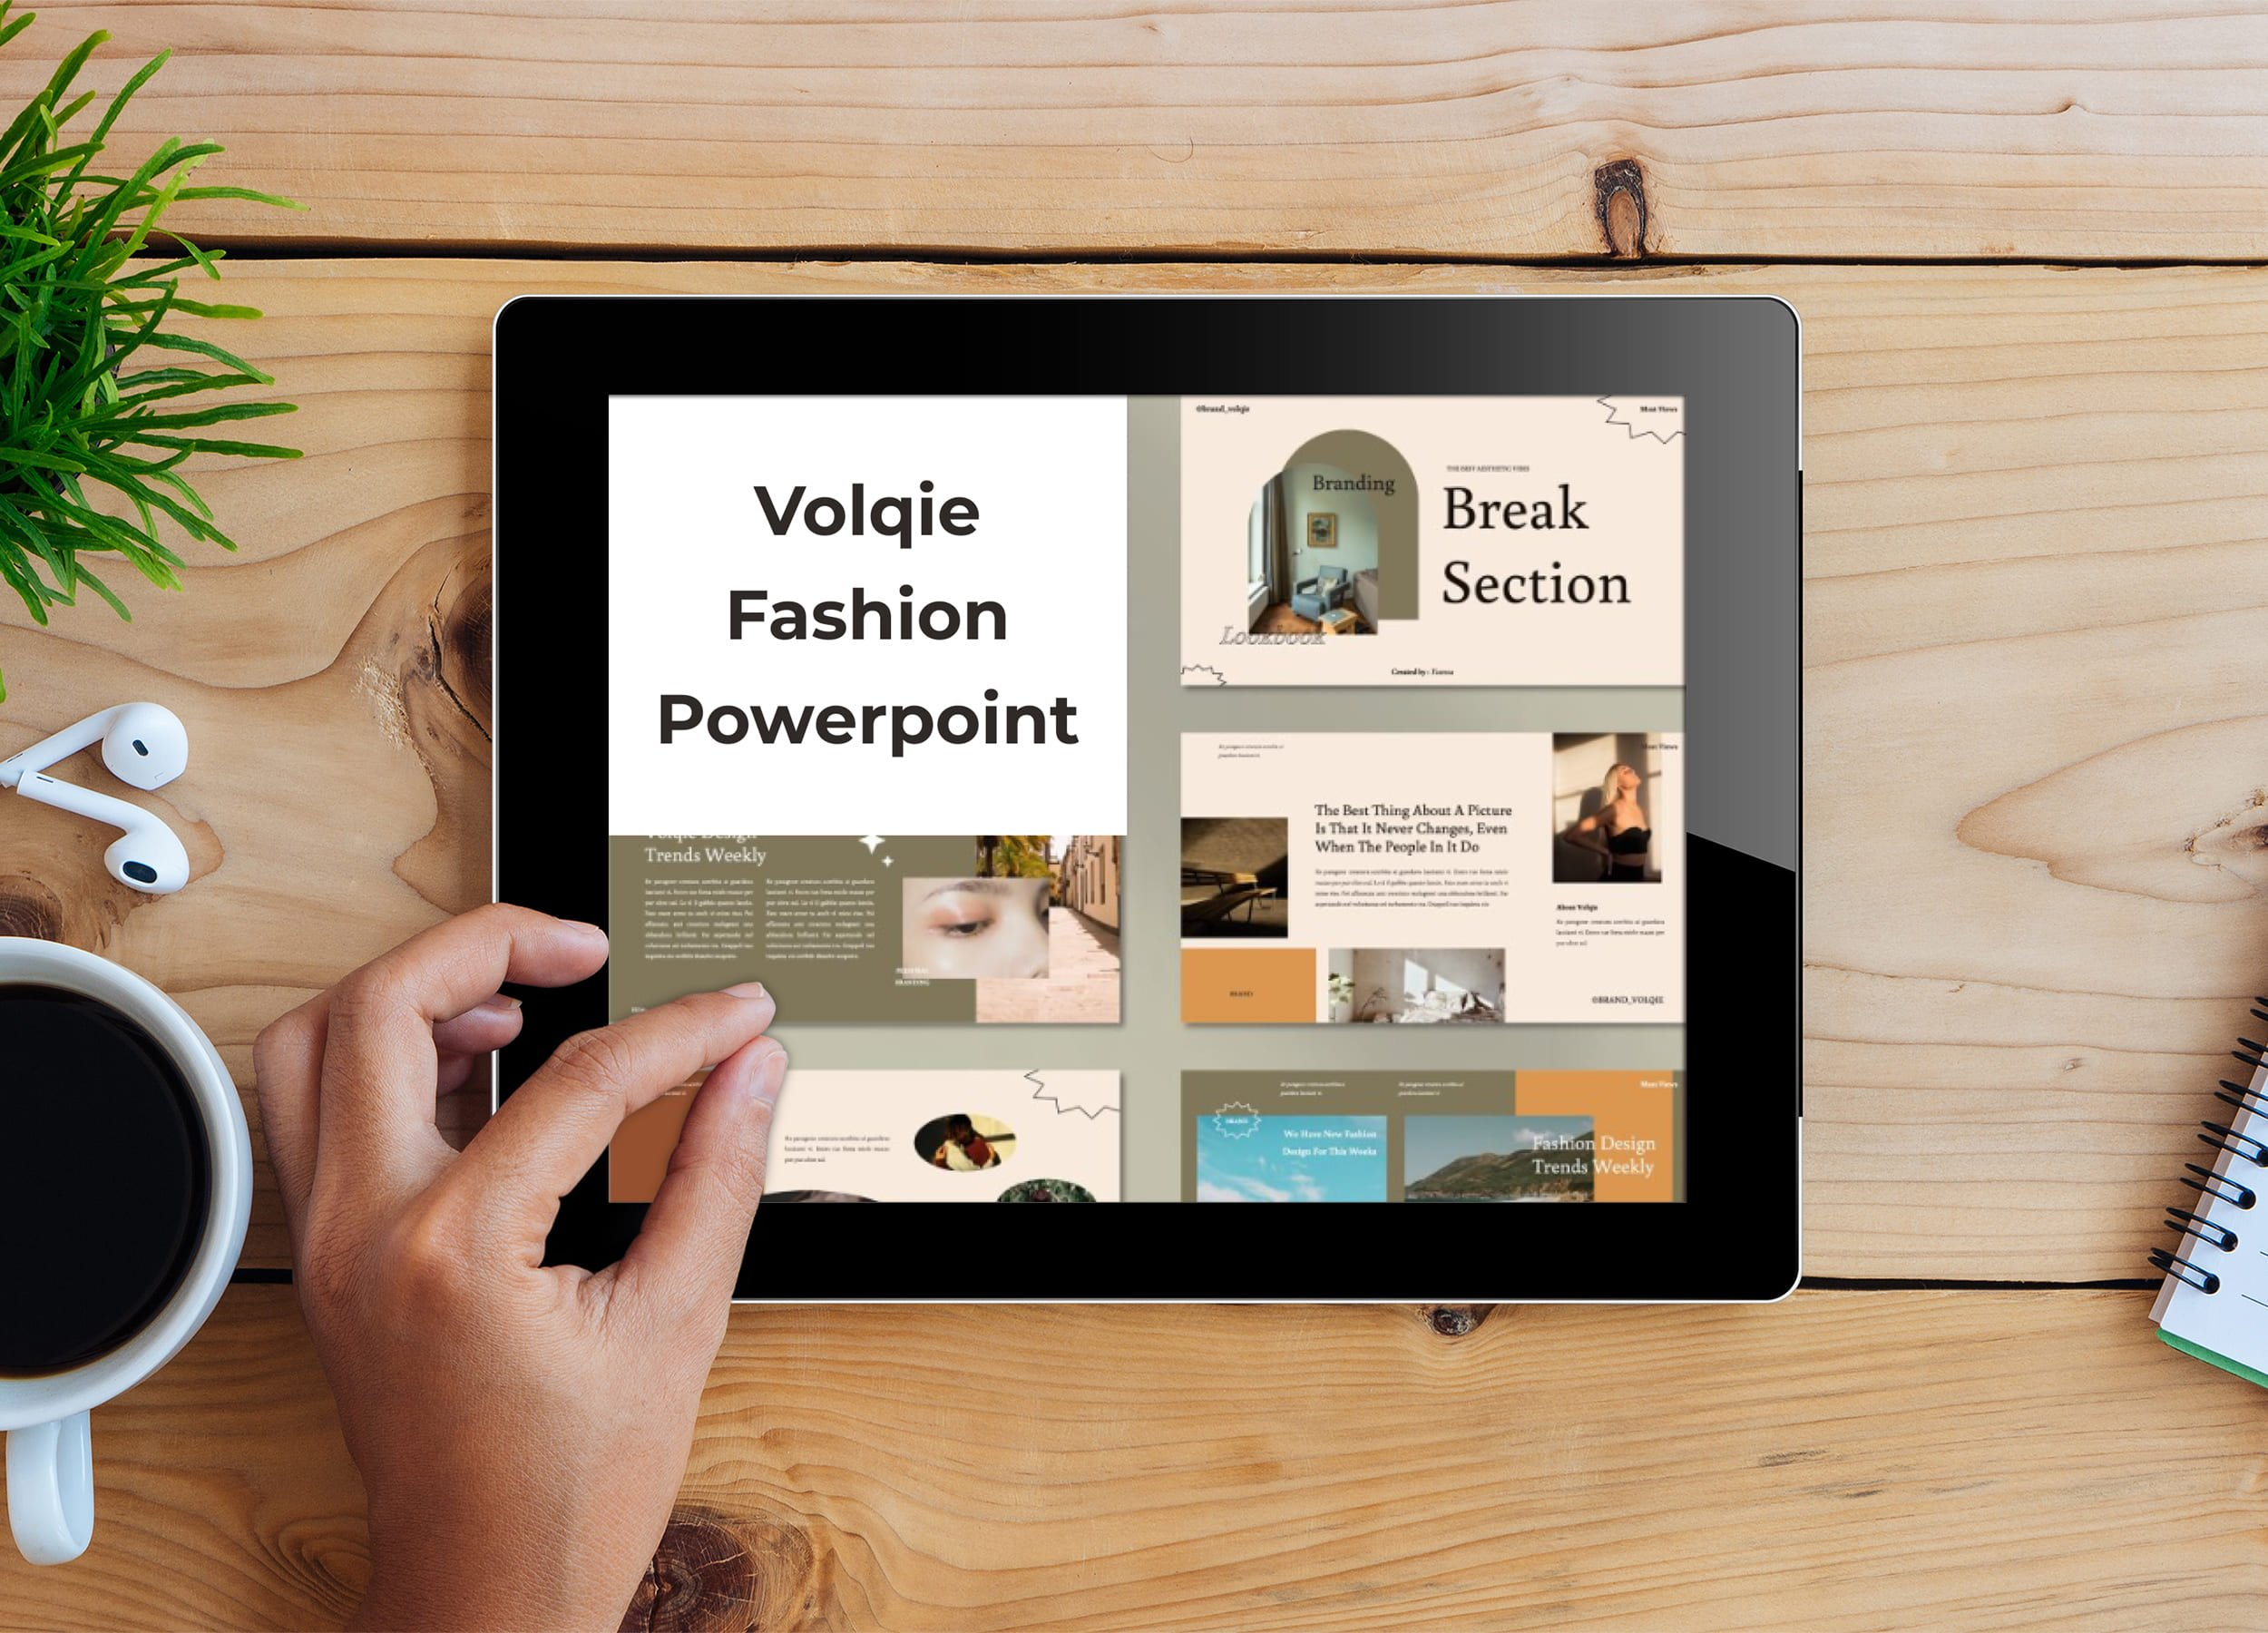 Tablet option of the Volqie - Fashion Powerpoint.